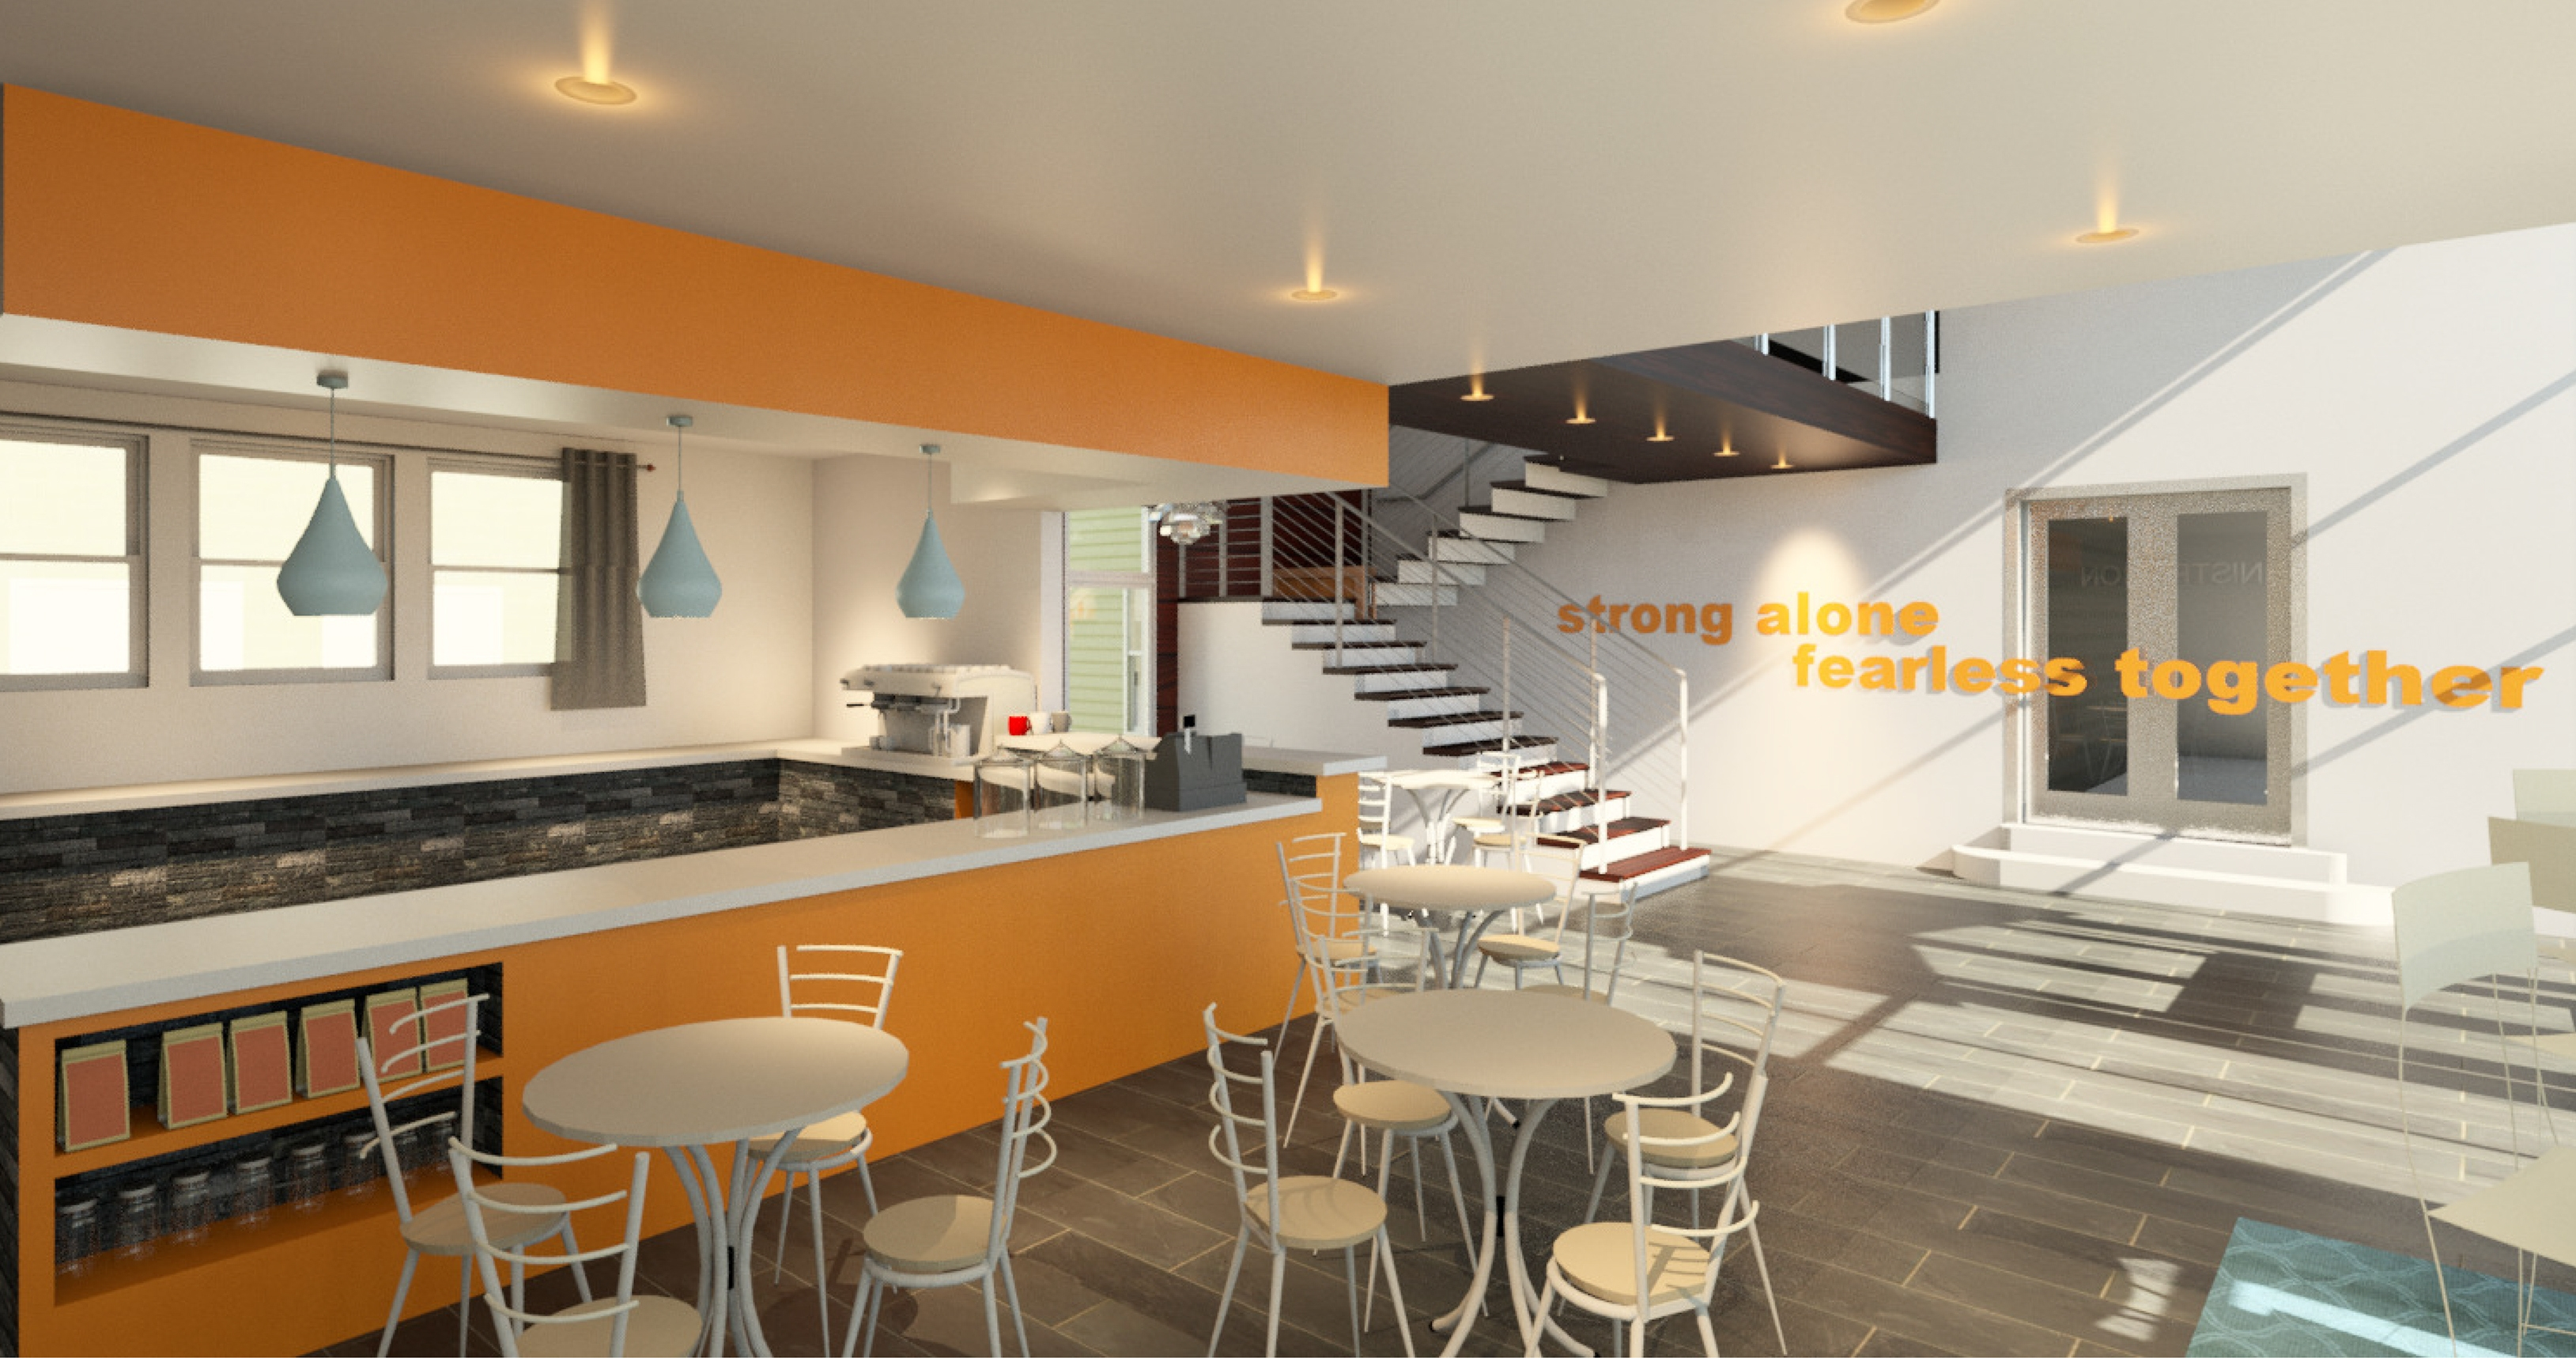 A rendering shows how the lobby and cafe of the YWCA's building after the  proposed $3 million to $4 million renovation.